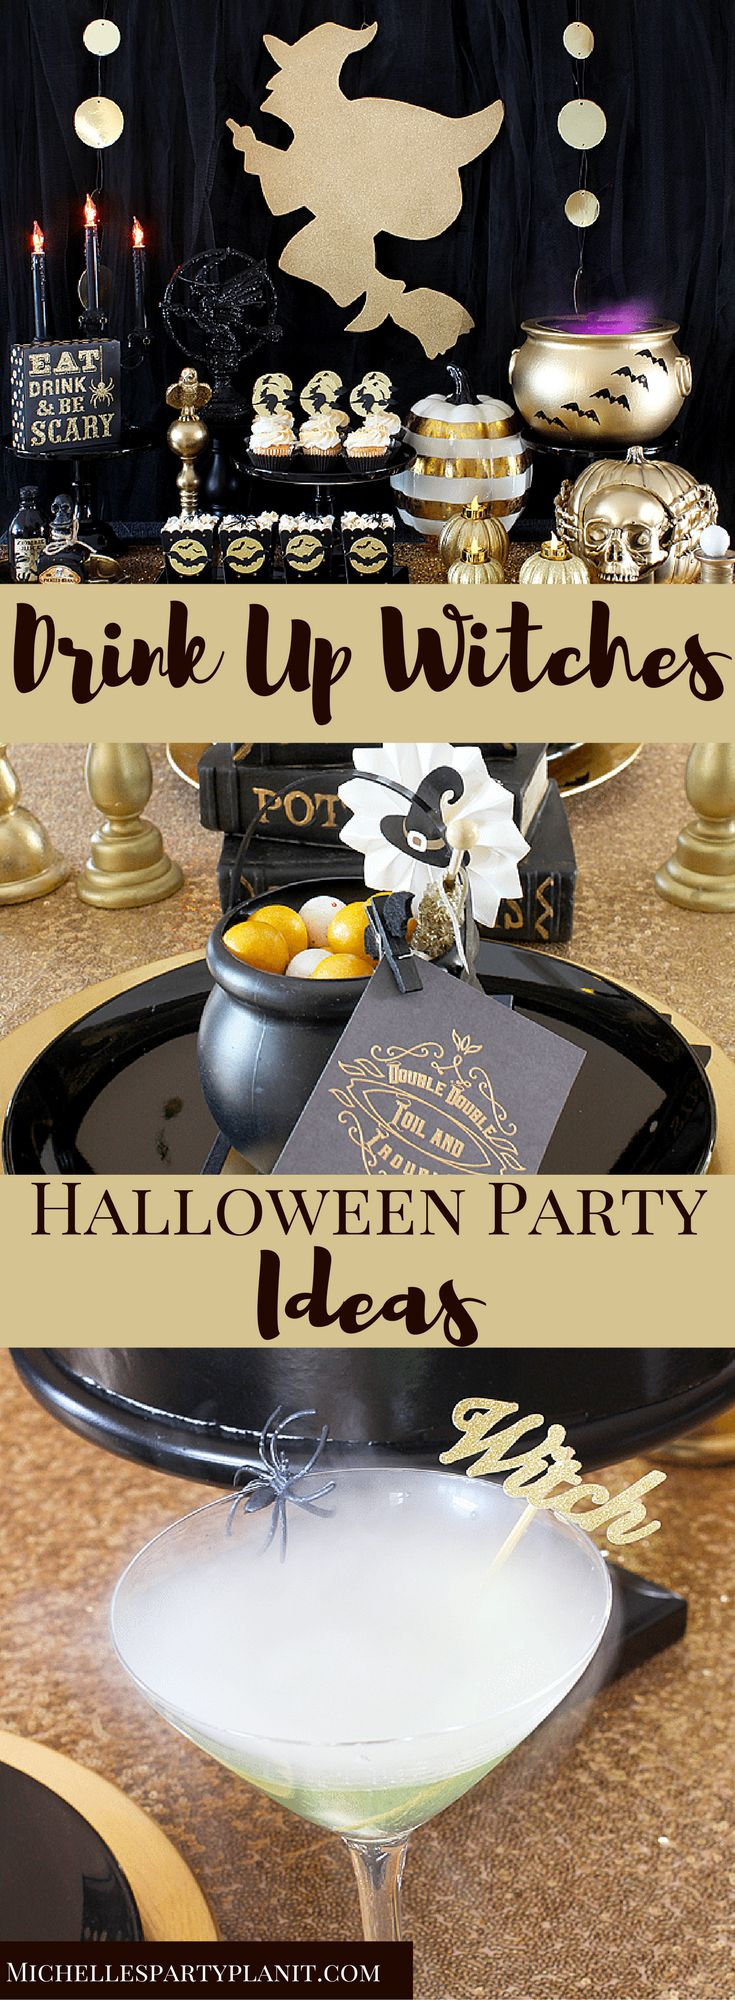 Best 25+ Witch theme party ideas on Pinterest | Halloween party ...